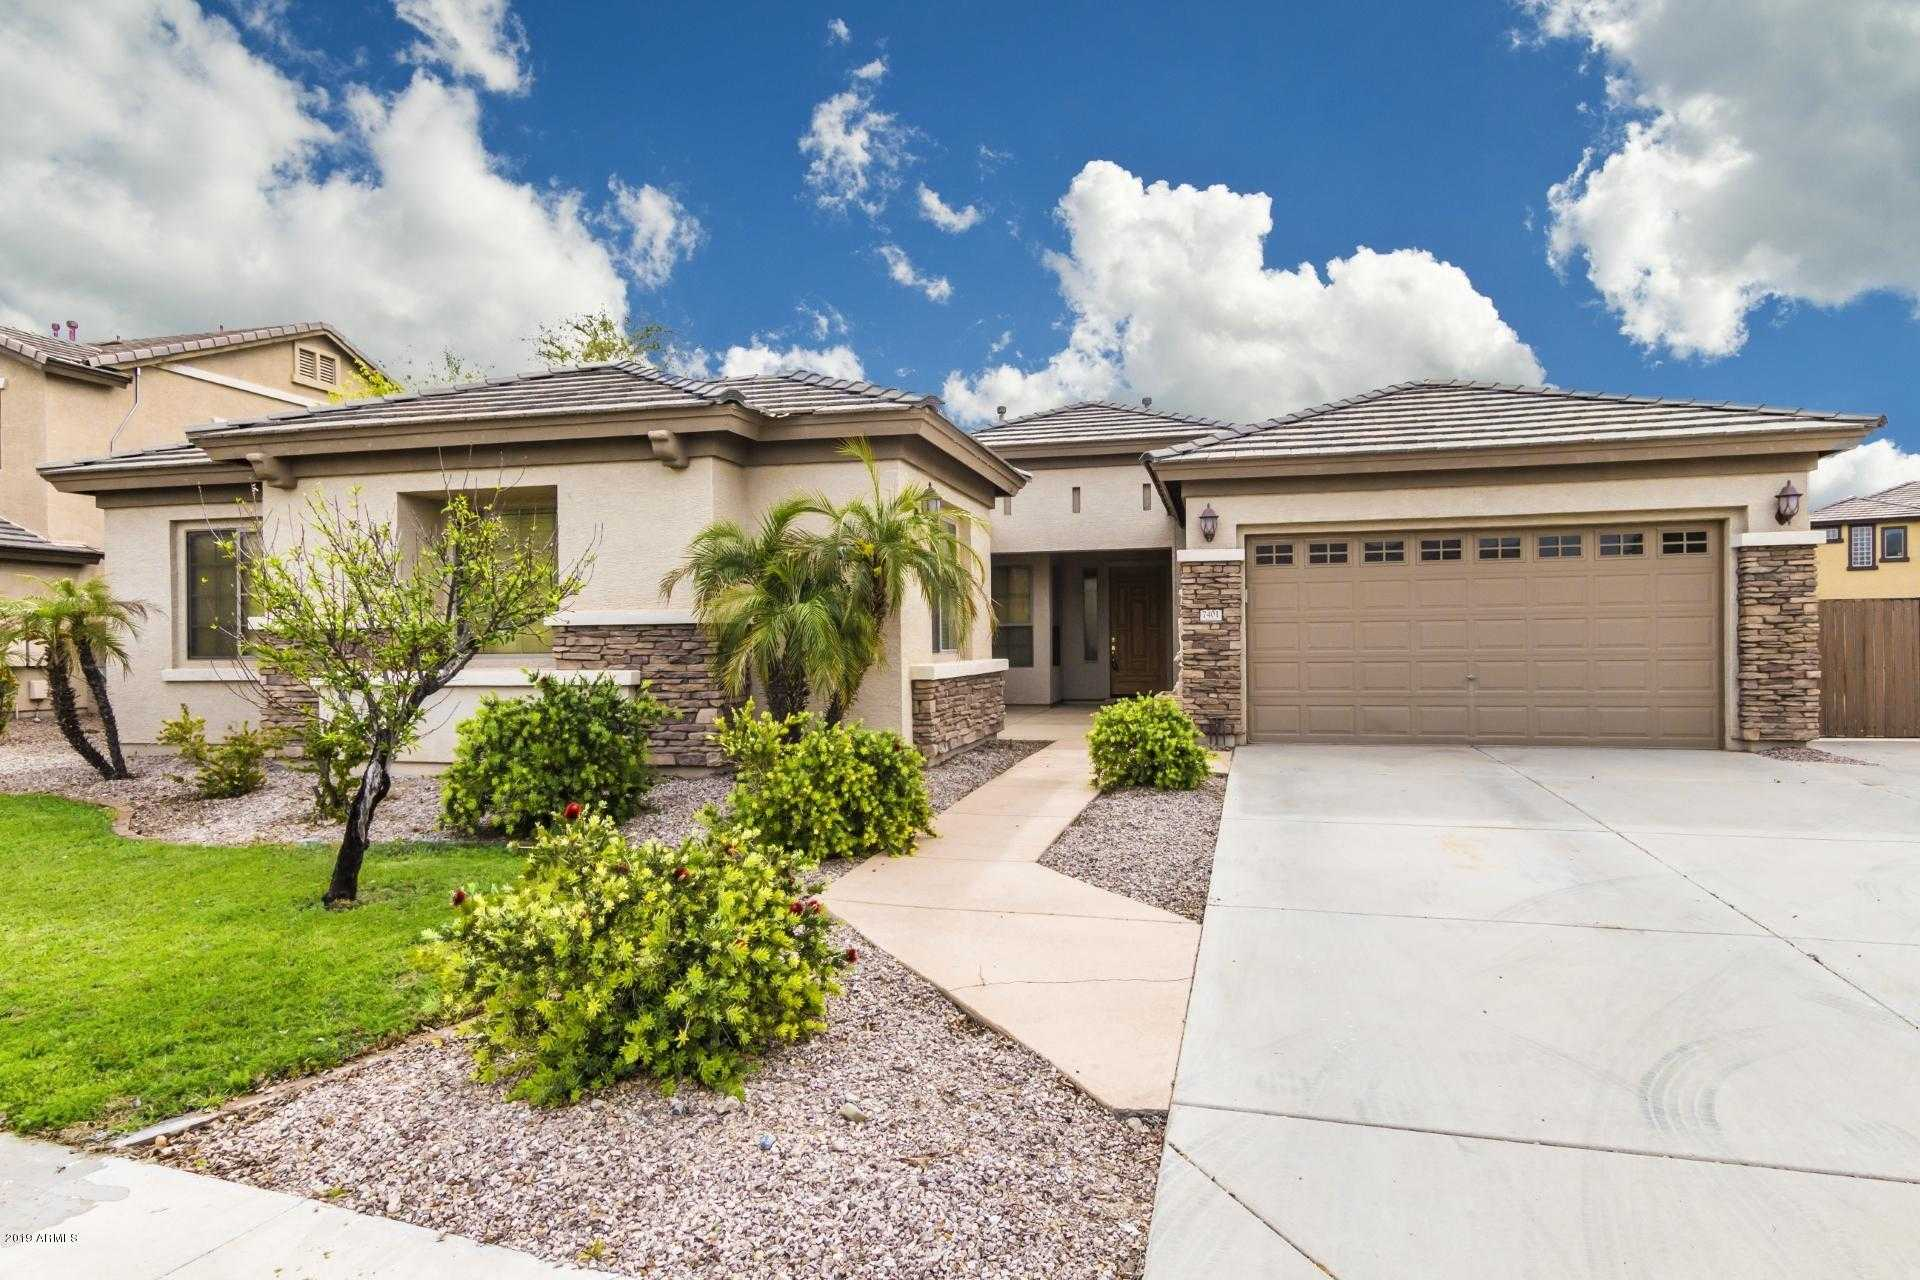 $404,999 - 4Br/3Ba - Home for Sale in Rovey Farm Estates South, Glendale